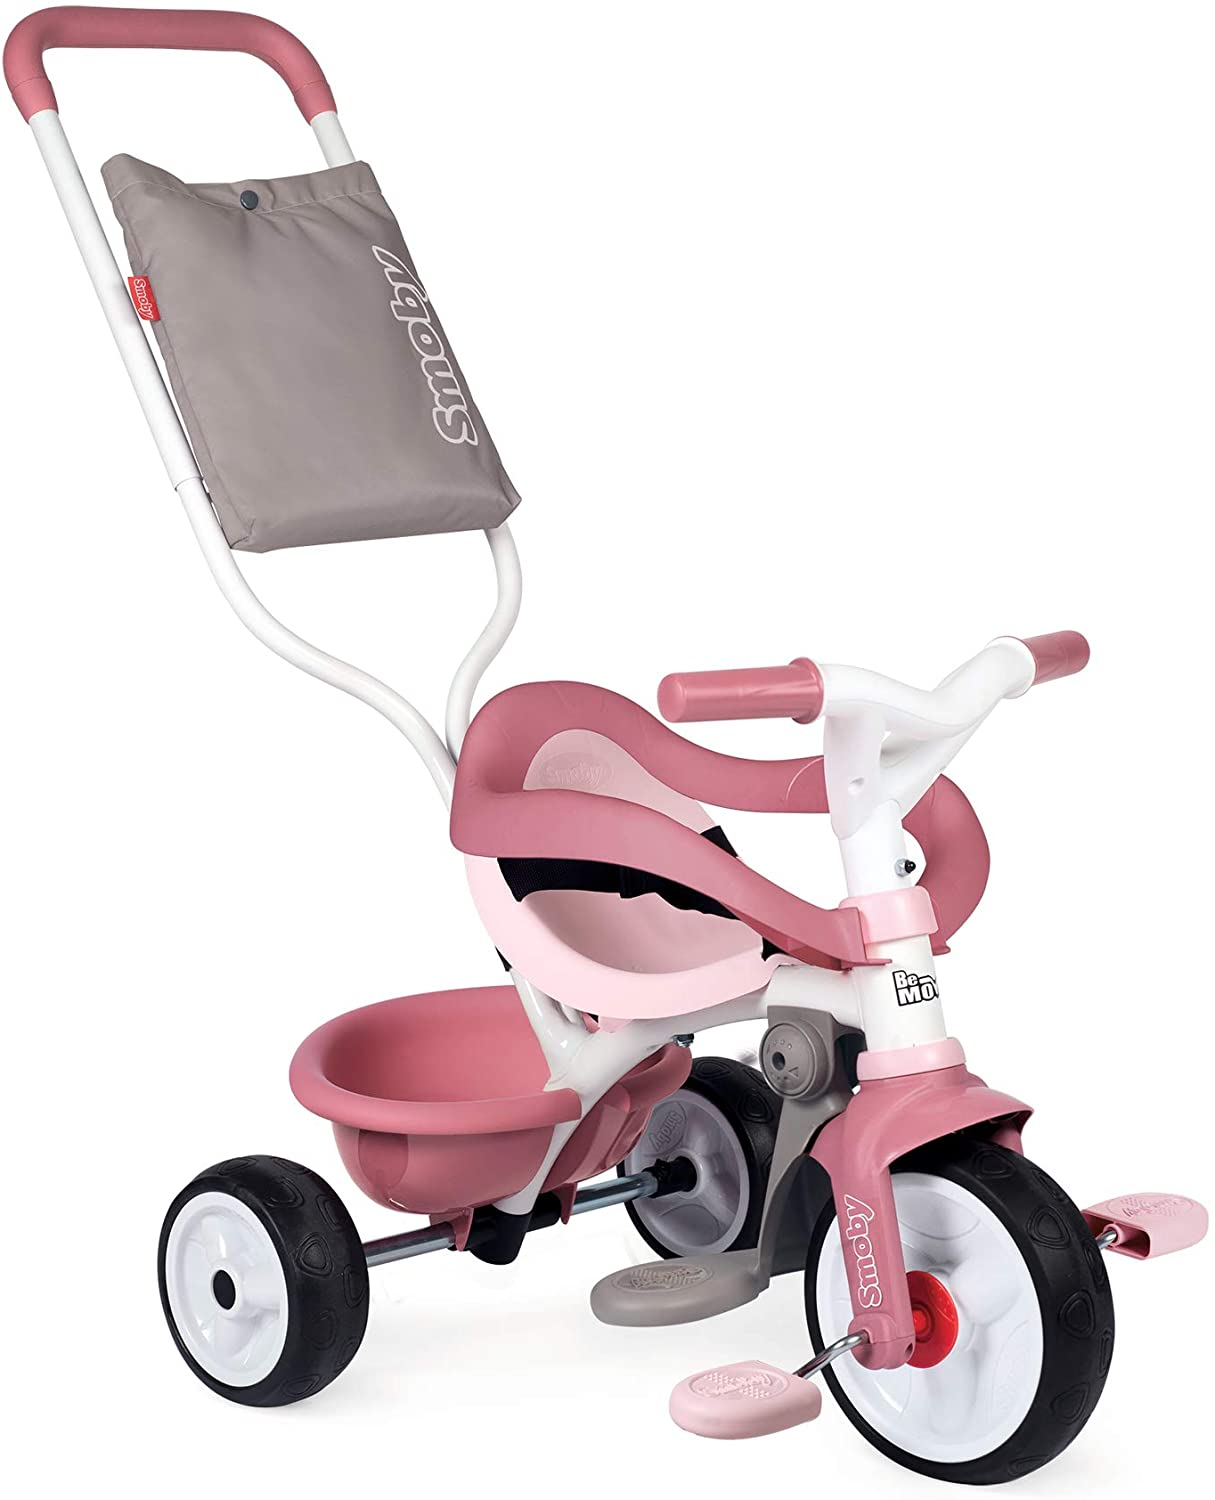 TRICICLO BE MOVE COMFORT ROSA 740415